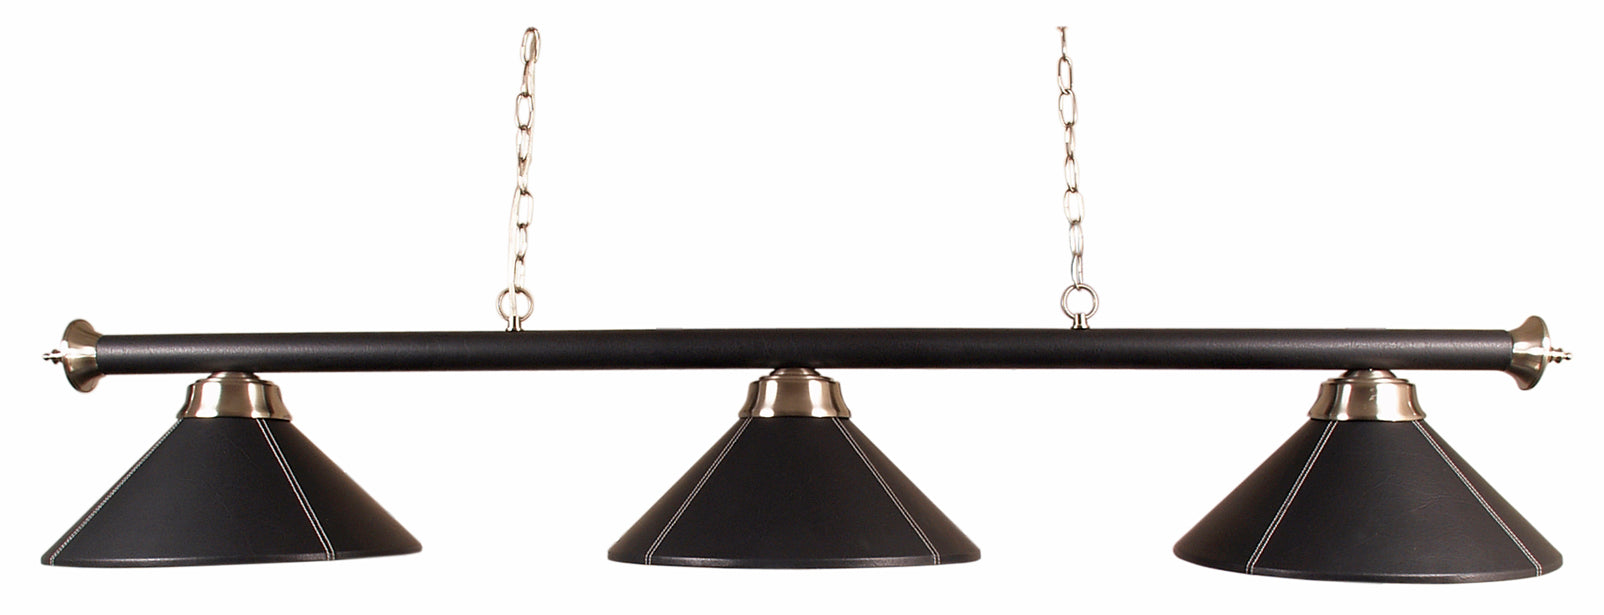 Conical Lamp with Black Leather Shades & Bar